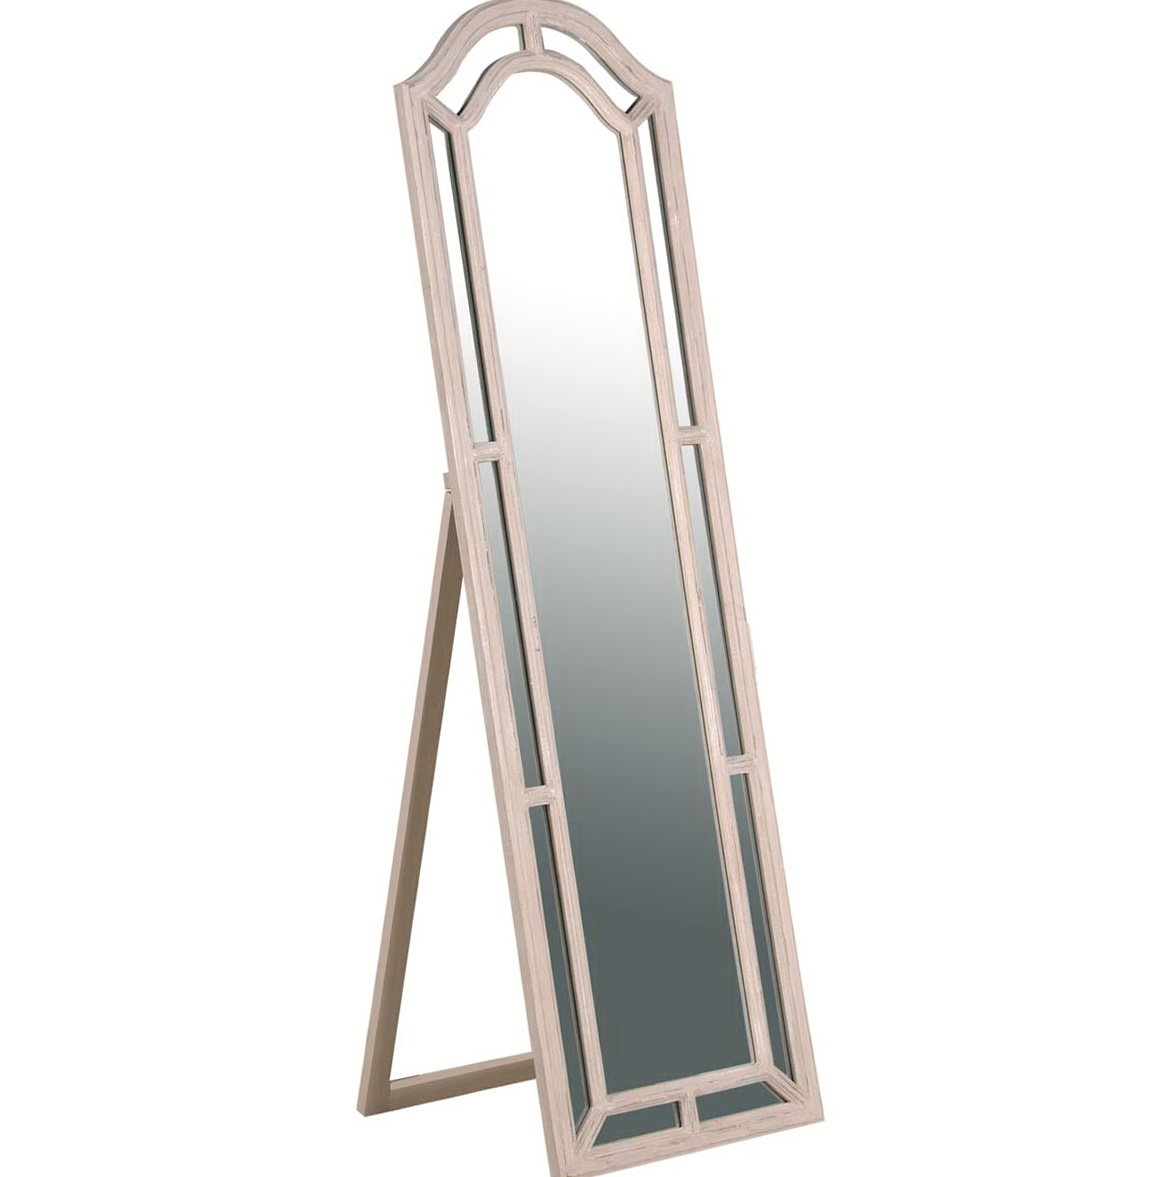 Designer Full Length Mirrors